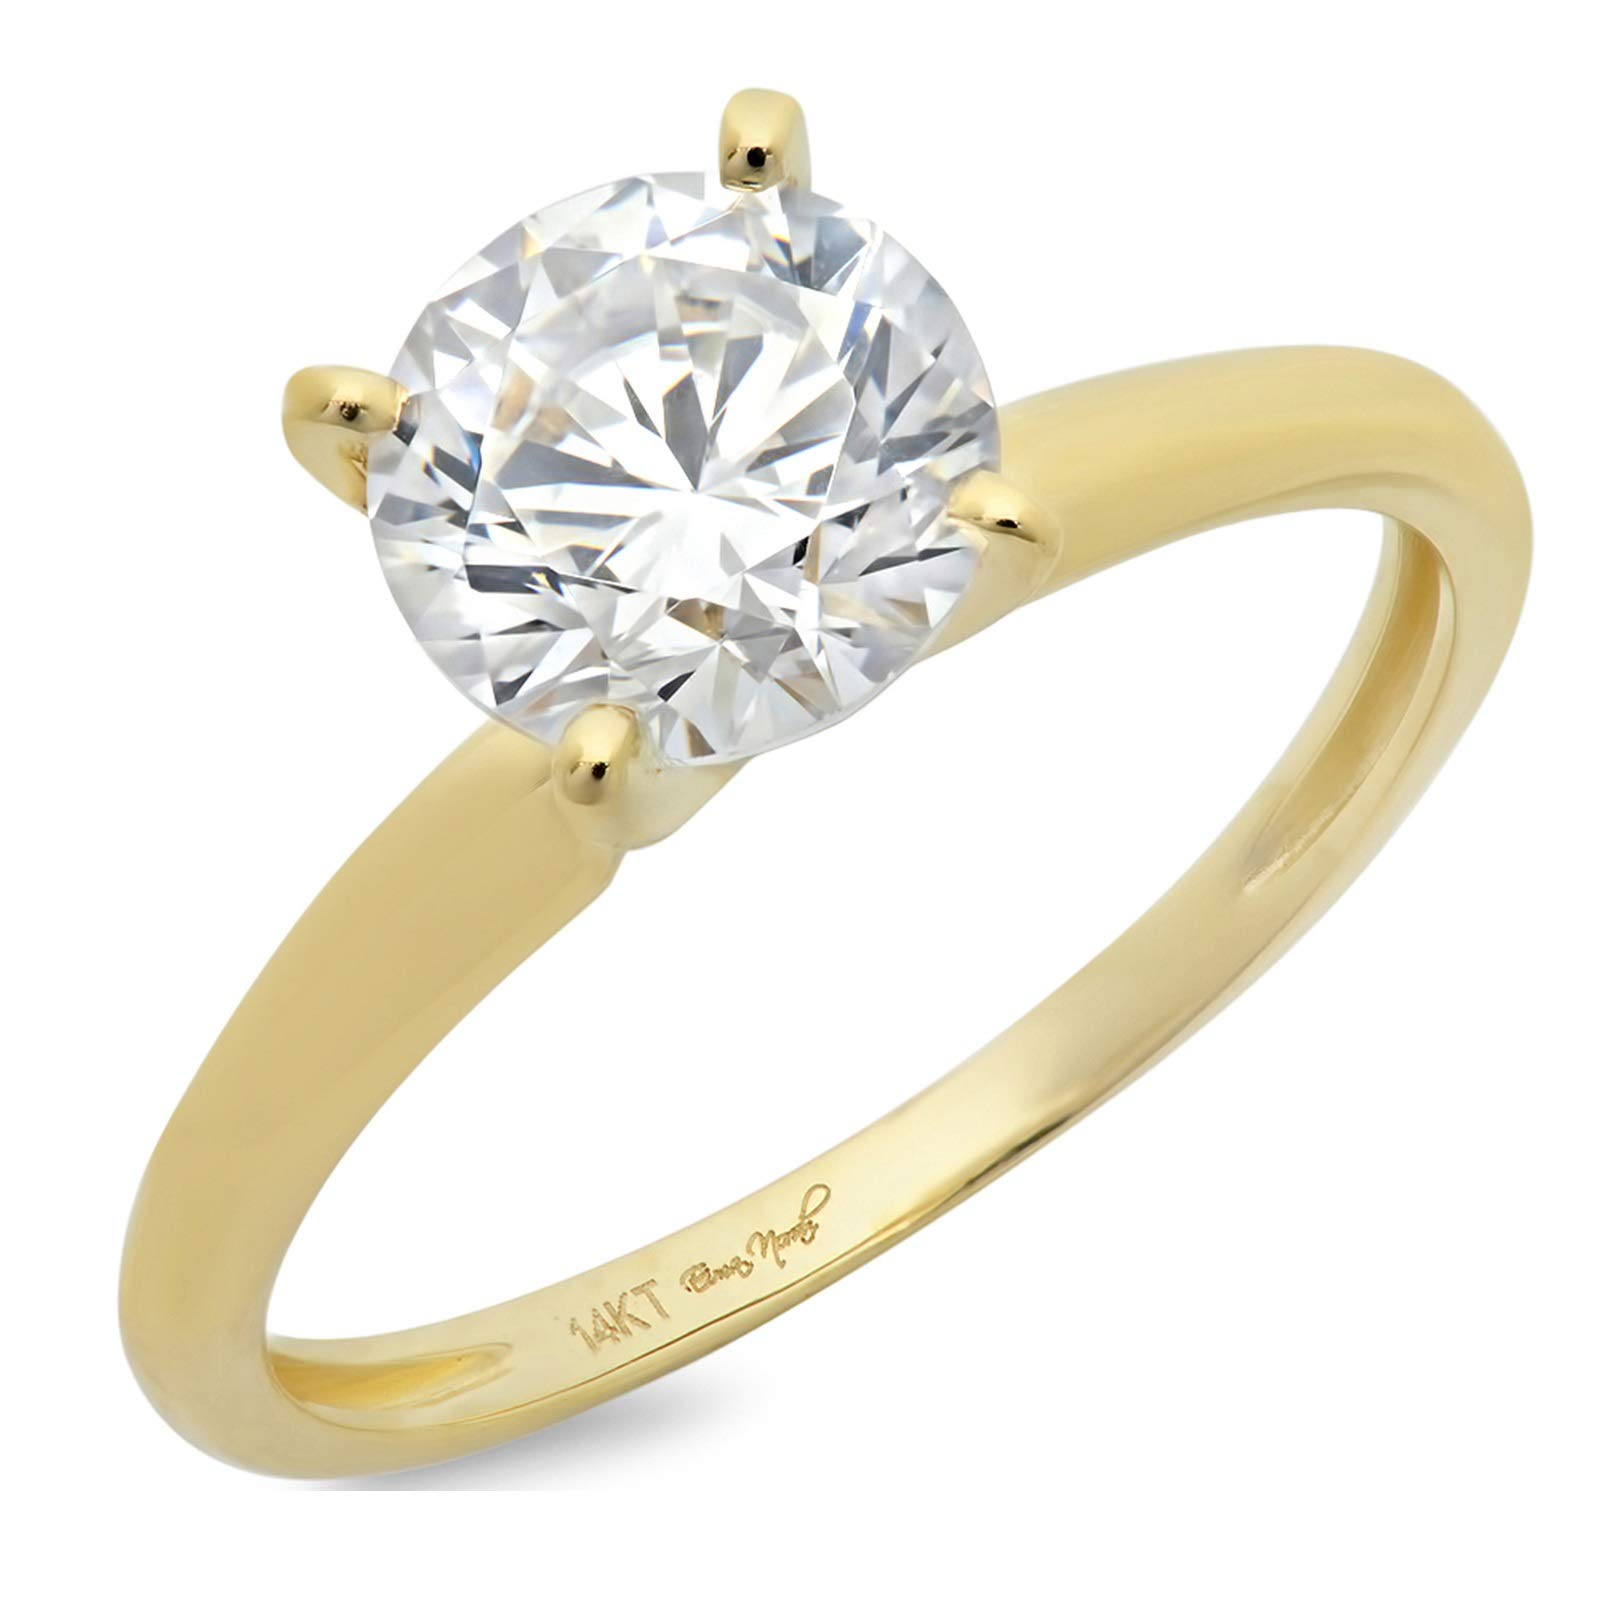 1.50 ct Brilliant Round Cut Solitaire Highest Quality Lab Created White Sapphire Ideal VVS1 D 4-Prong Engagement Wedding Bridal Promise Anniversary Ring in Solid Real 14k Yellow Gold for Women